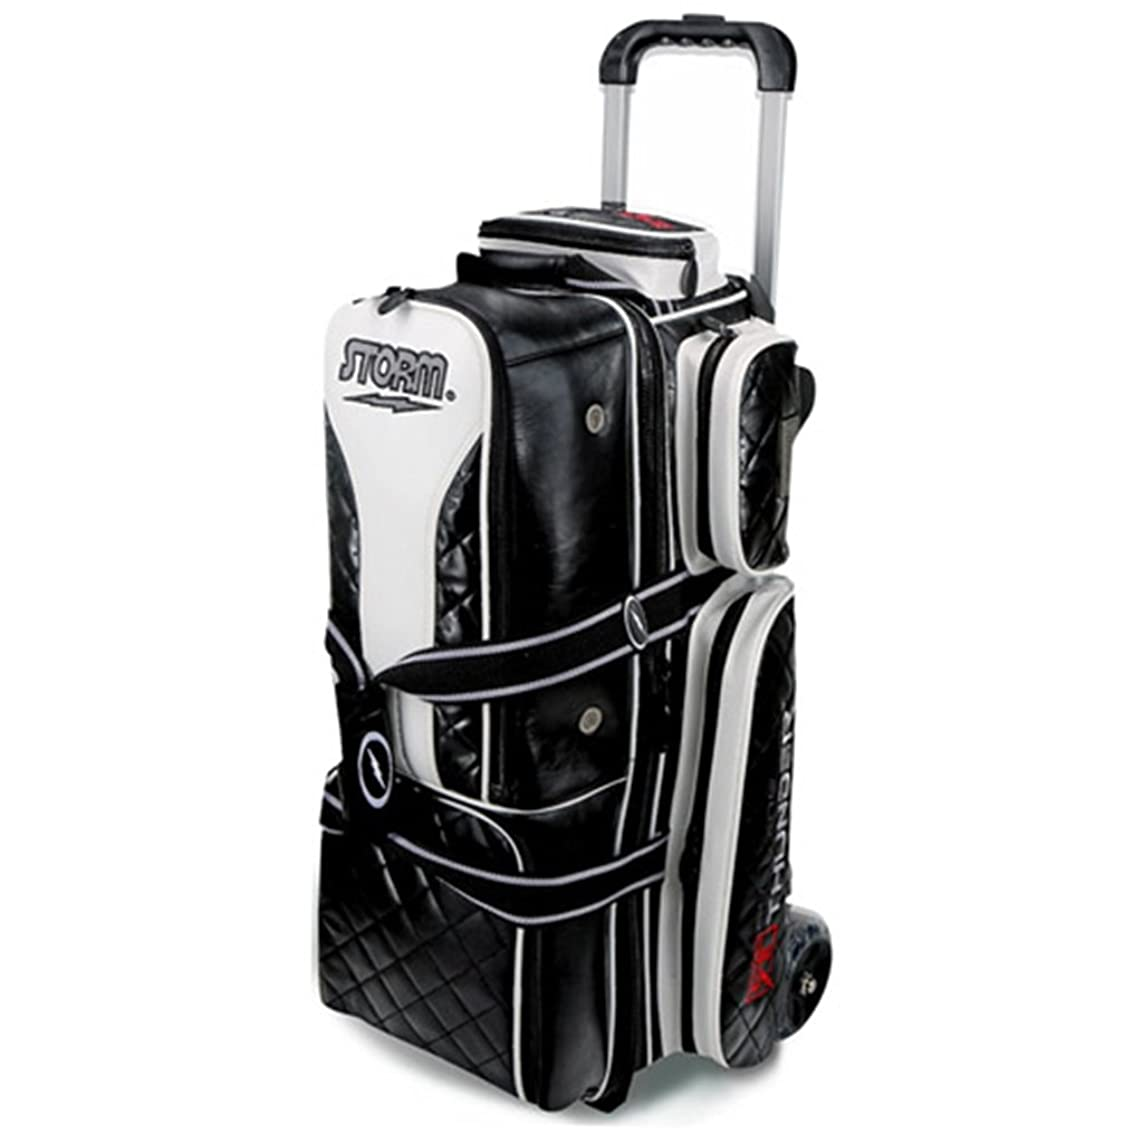 Storm 3 Ball Rolling Thunder Signature Series Bowling Bag Black